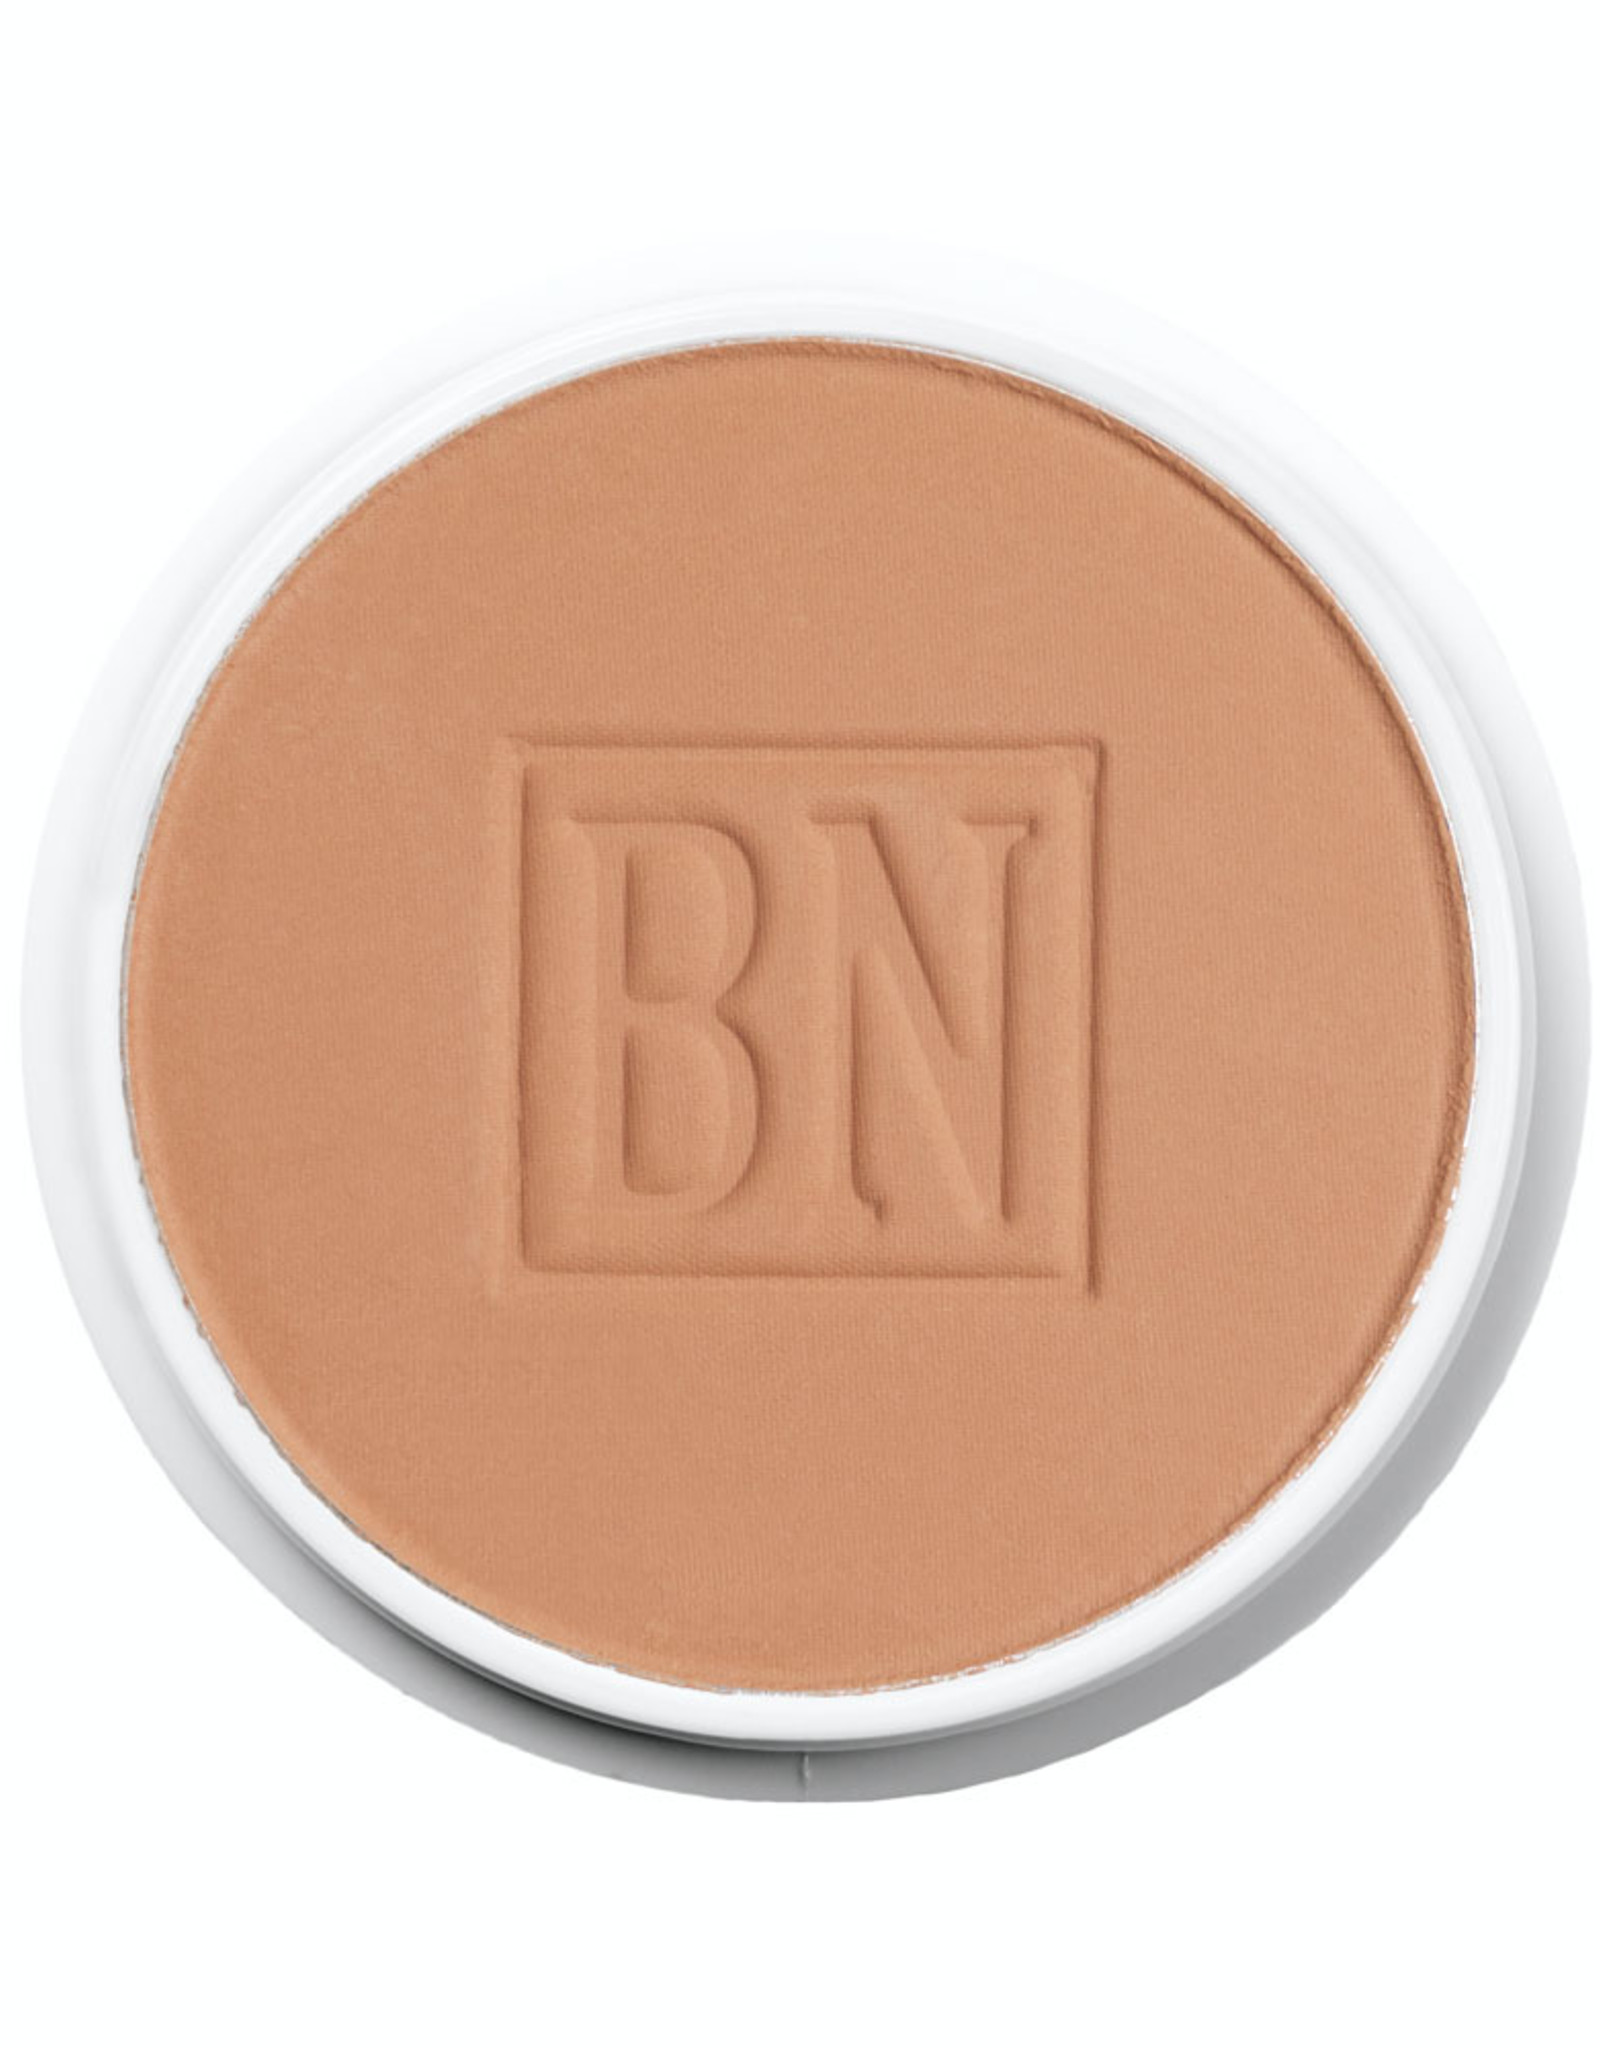 Ben Nye FOUNDATION-CAKE, TAN NO 1, 1 OZ